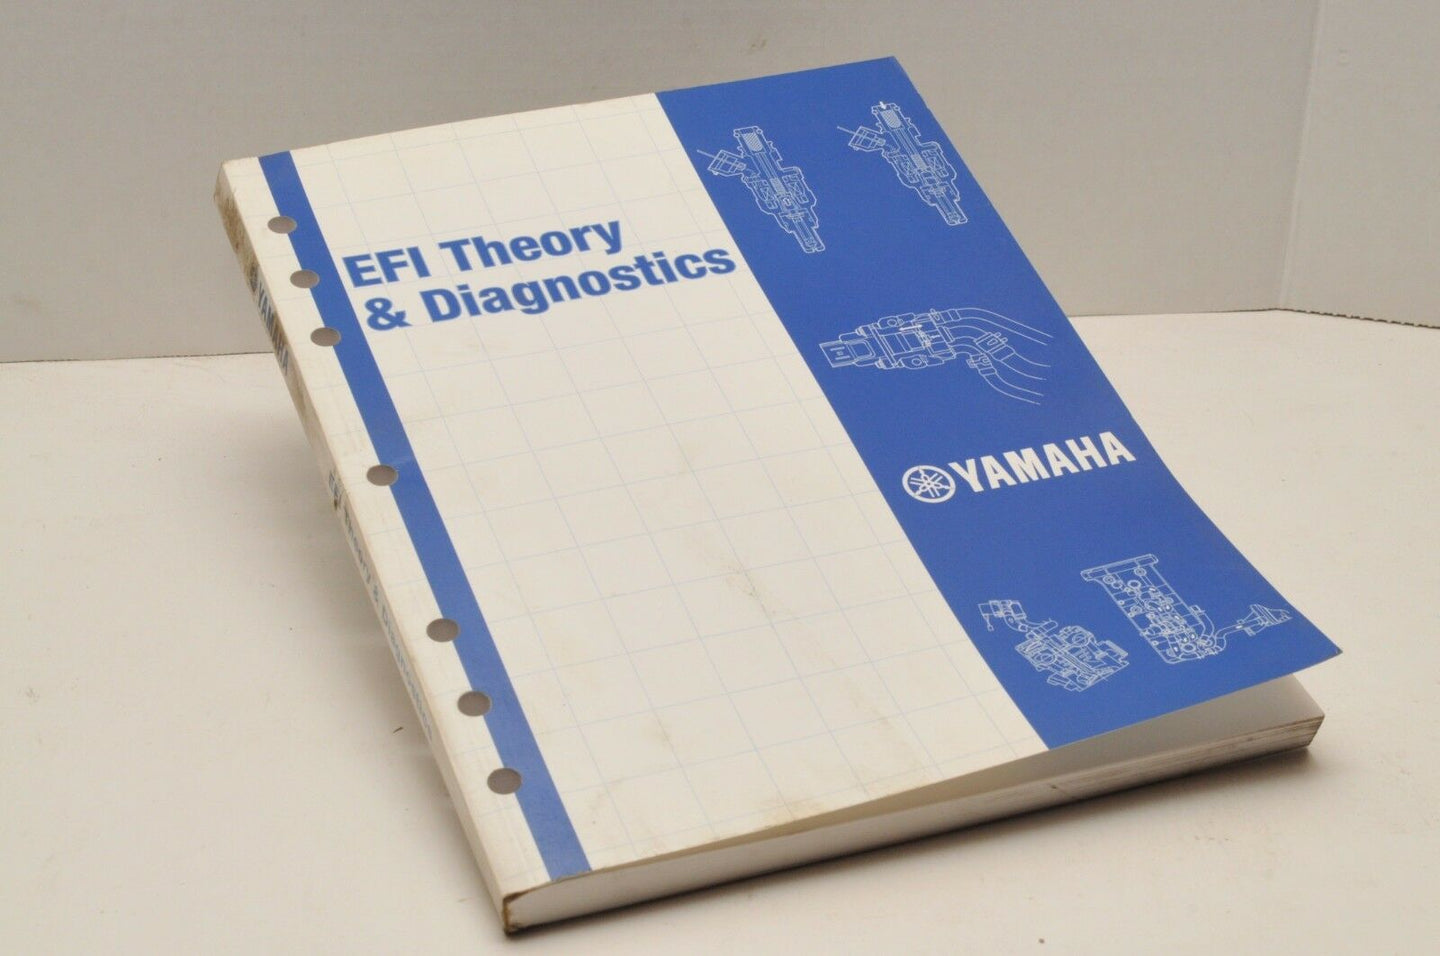 Genuine YAMAHA EFI THEORY DIAGNOSTICS BOOK+DISC DVD-10660-00-05 PUB.2005